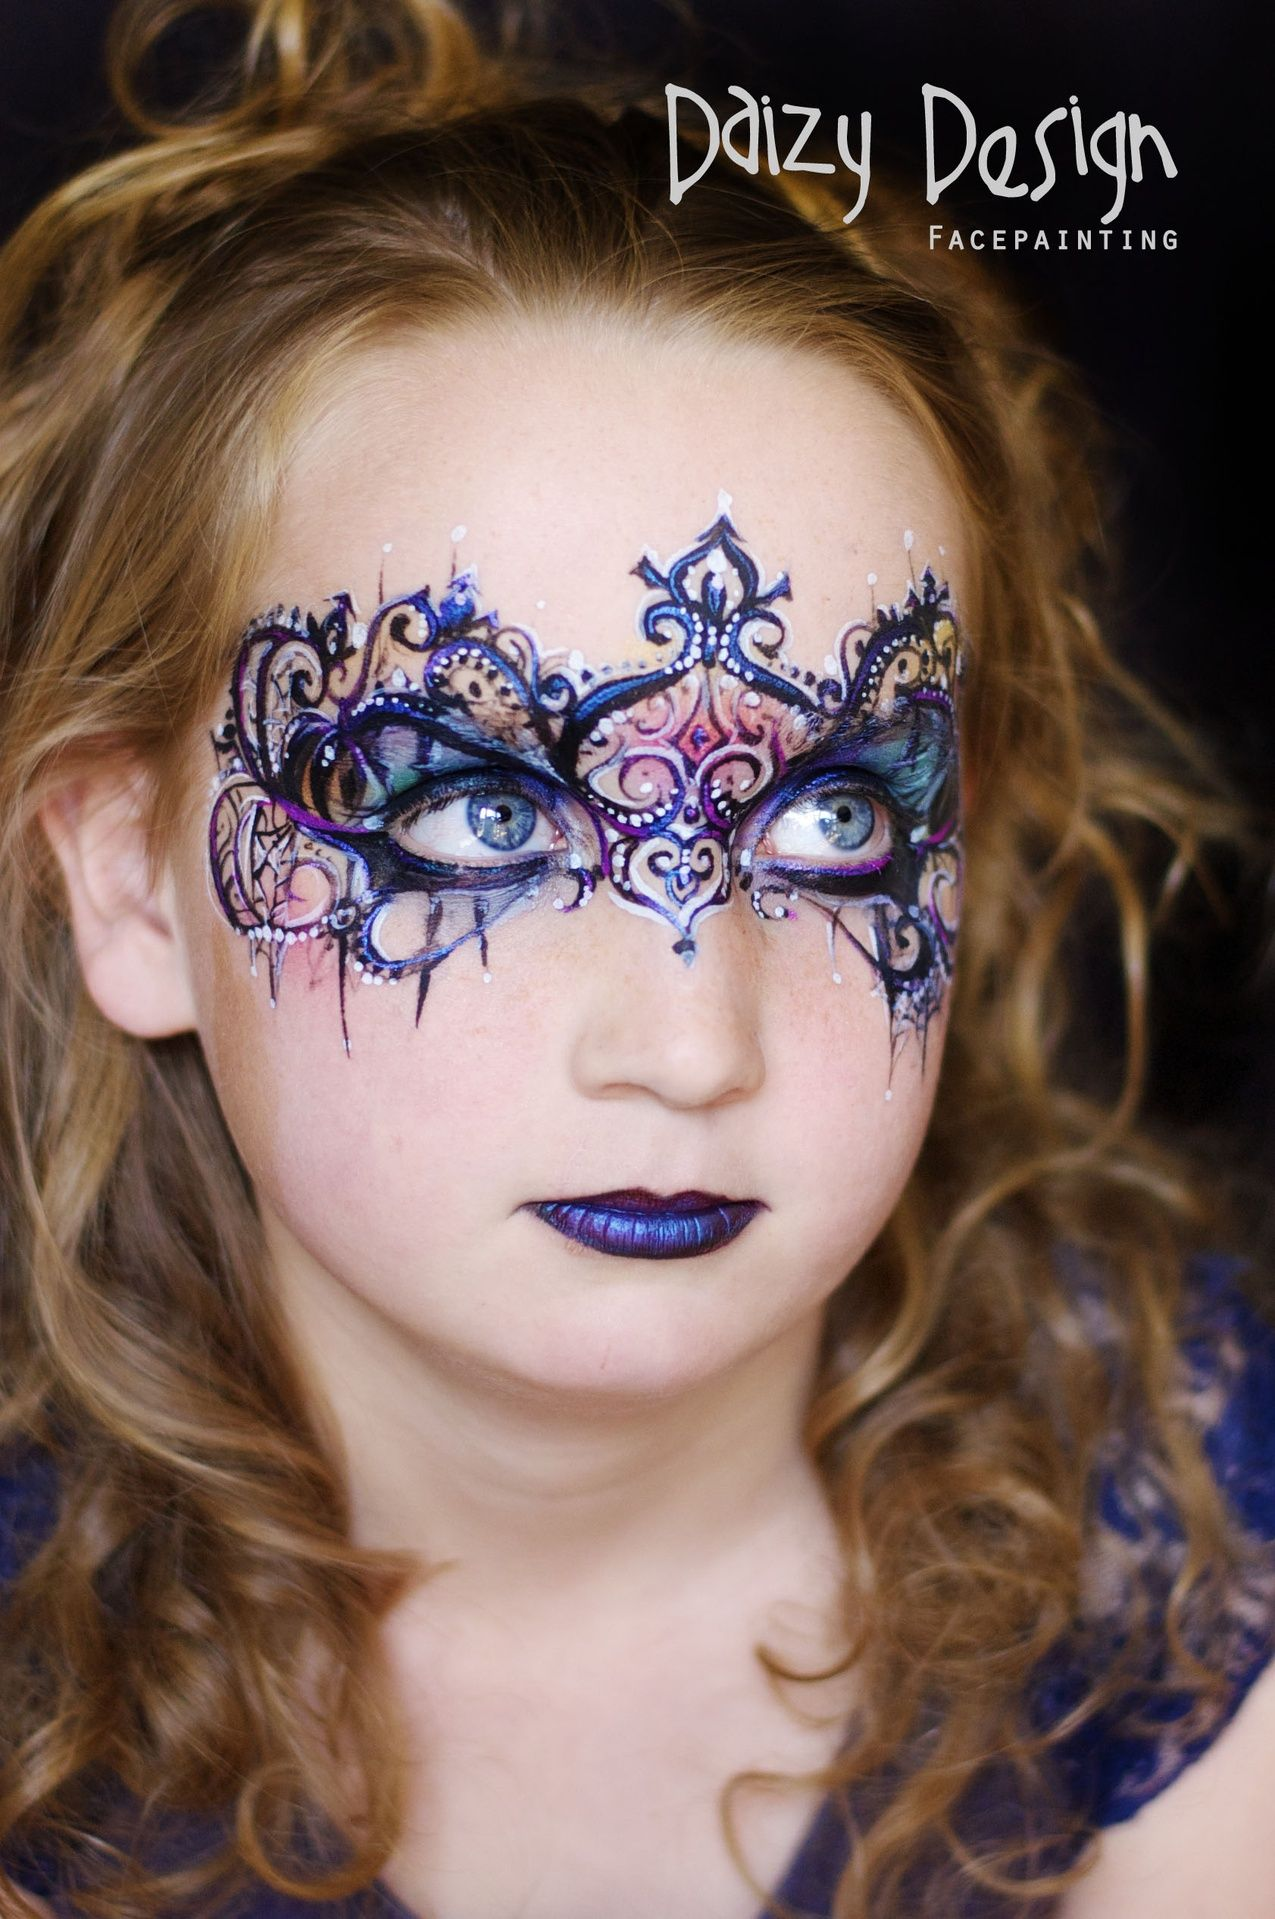 Face Painting By Daizy Design Hire A Professional Face